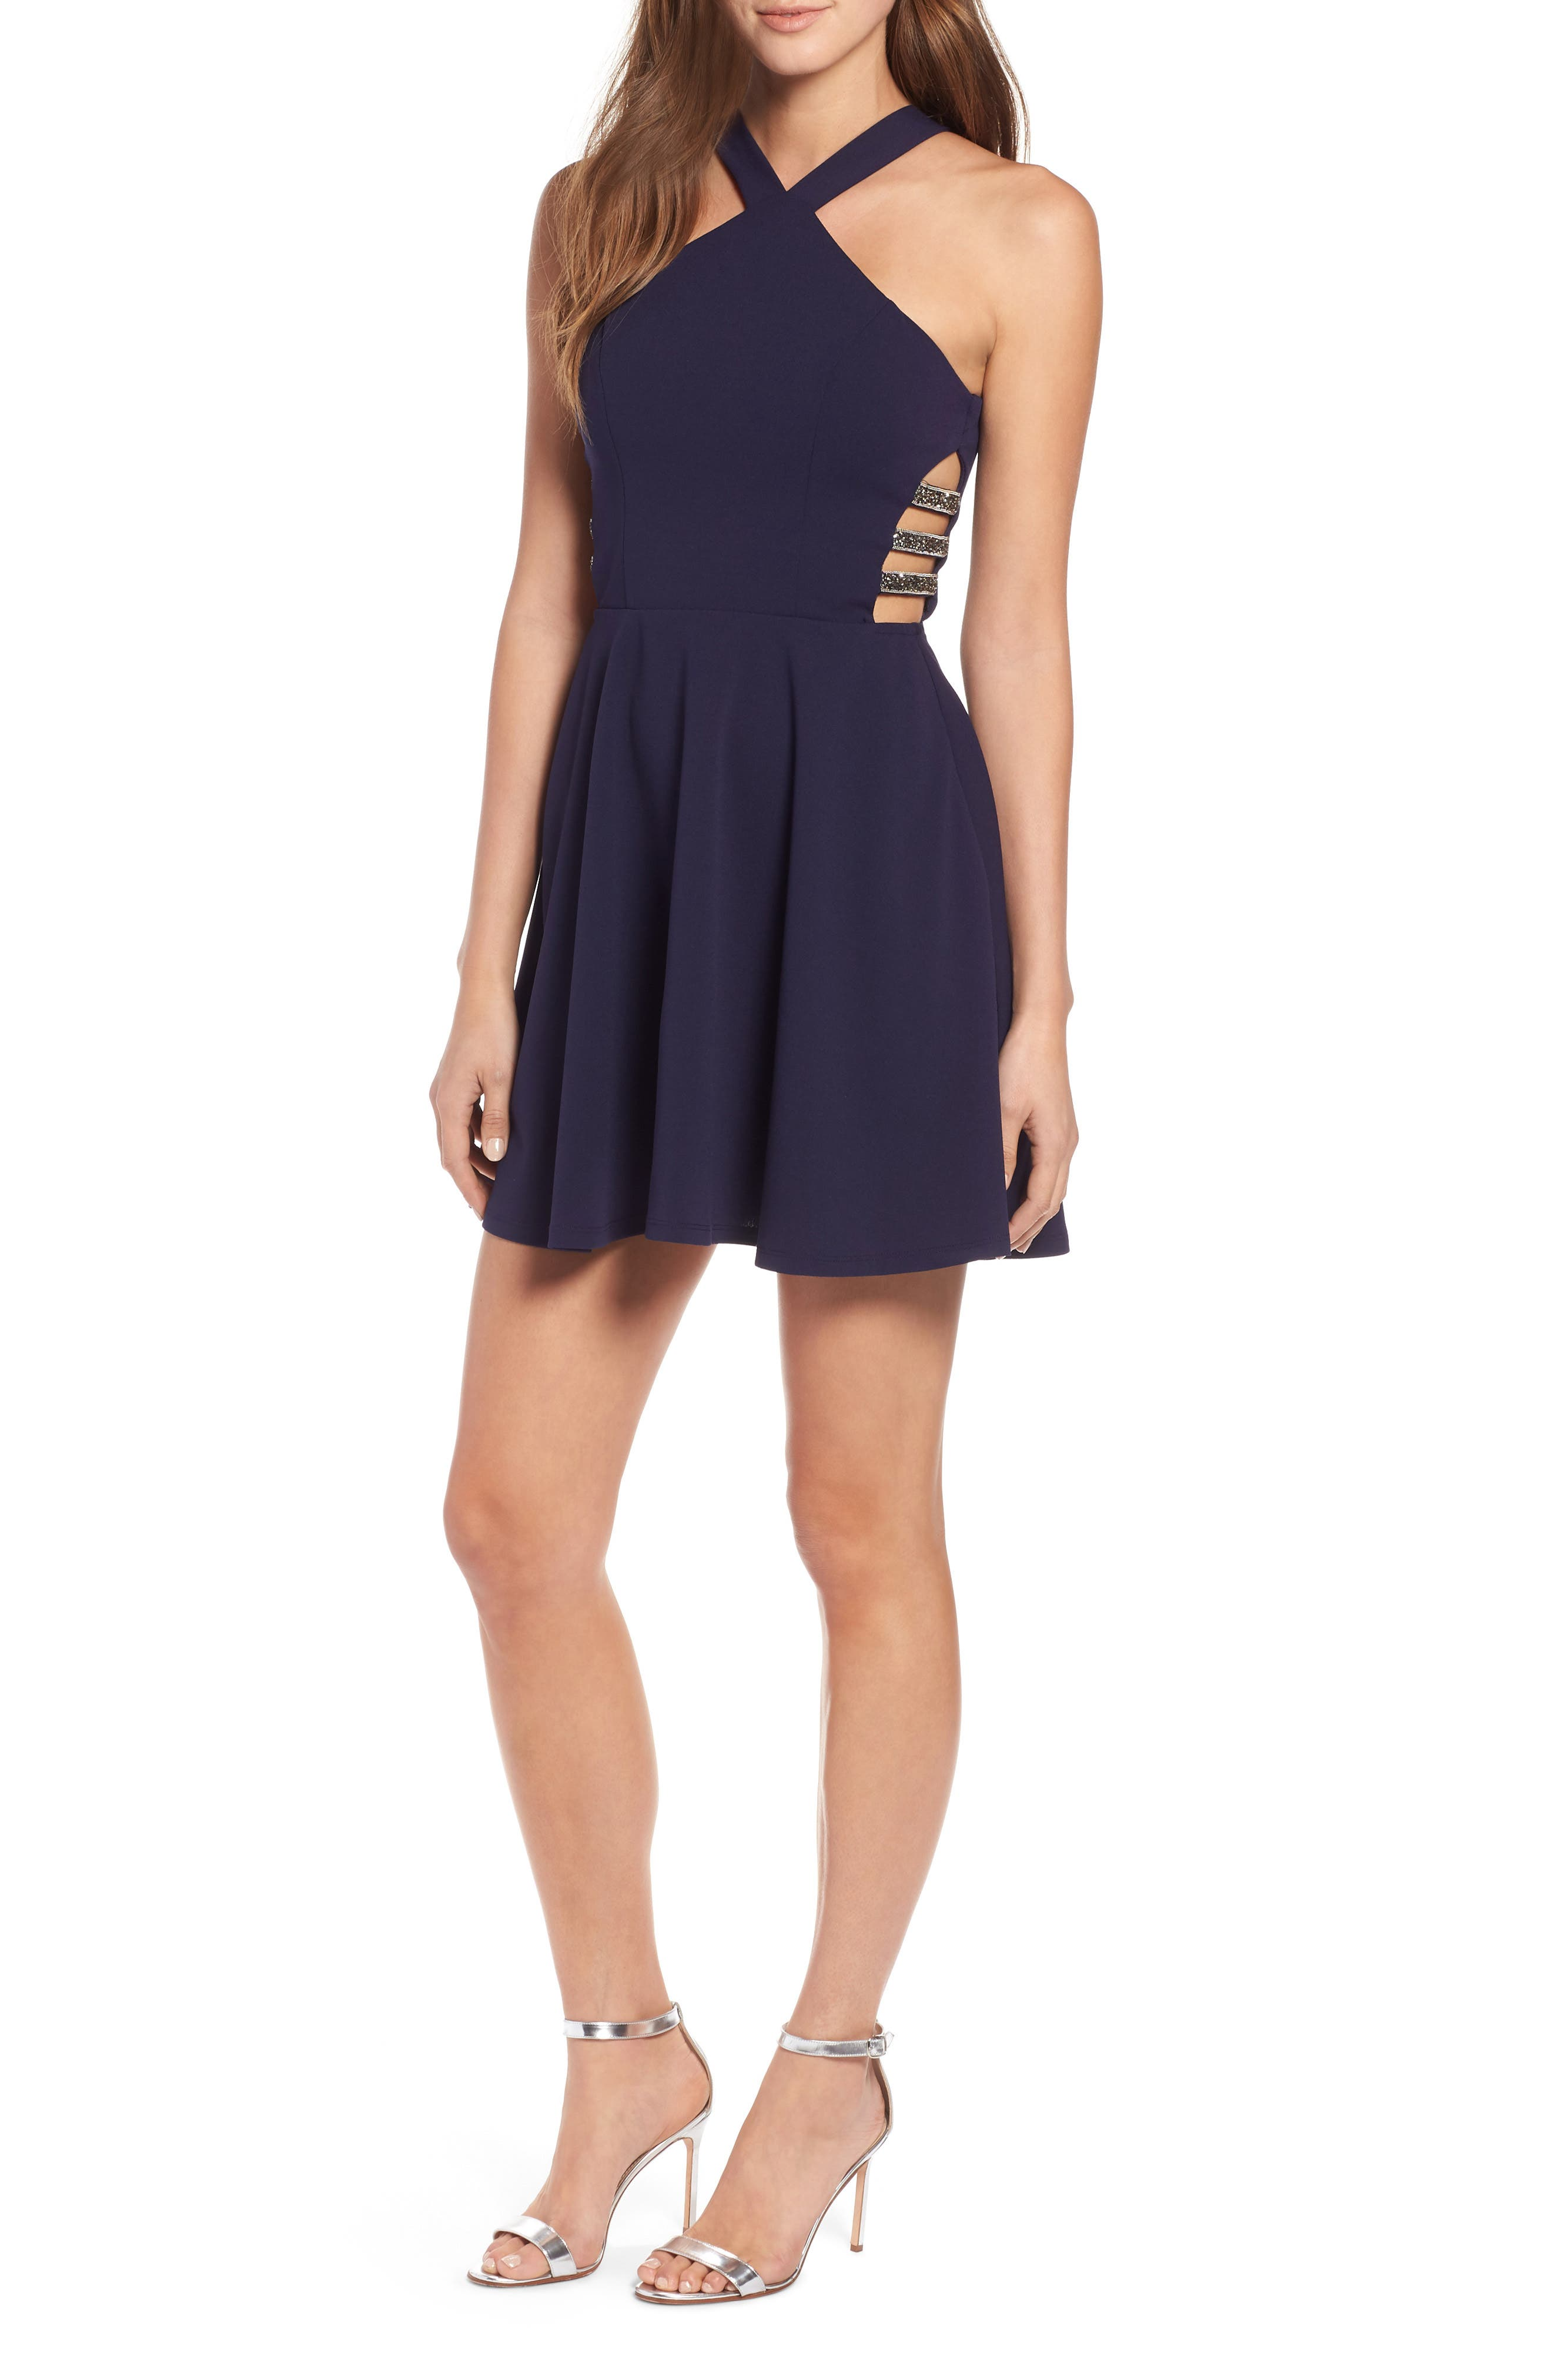 SPEECHLESS Side Cutout Fit & Flare Dress, Main, color, MIDNIGHT